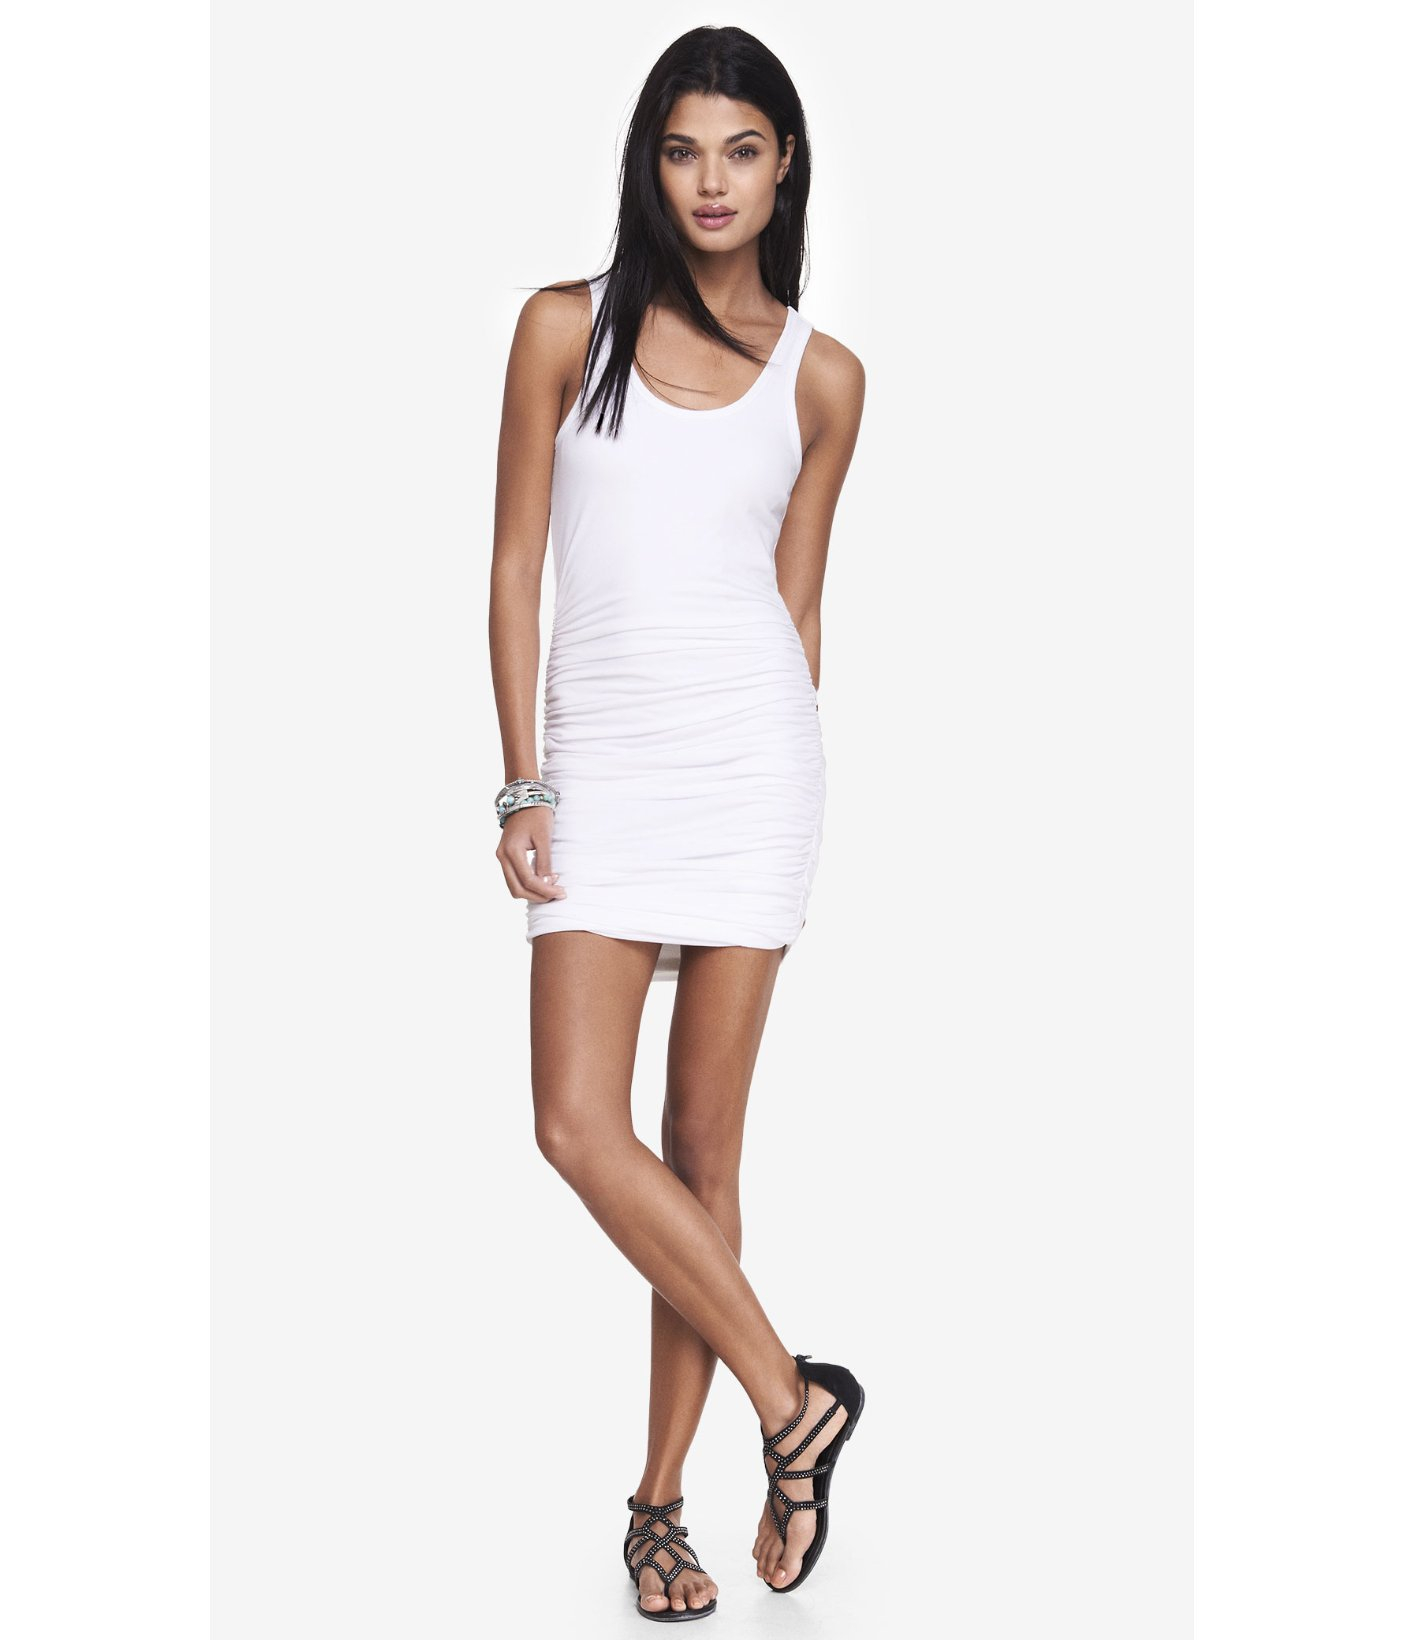 fda9b27c28 Lyst - Express White Ruched Tank Dress in White